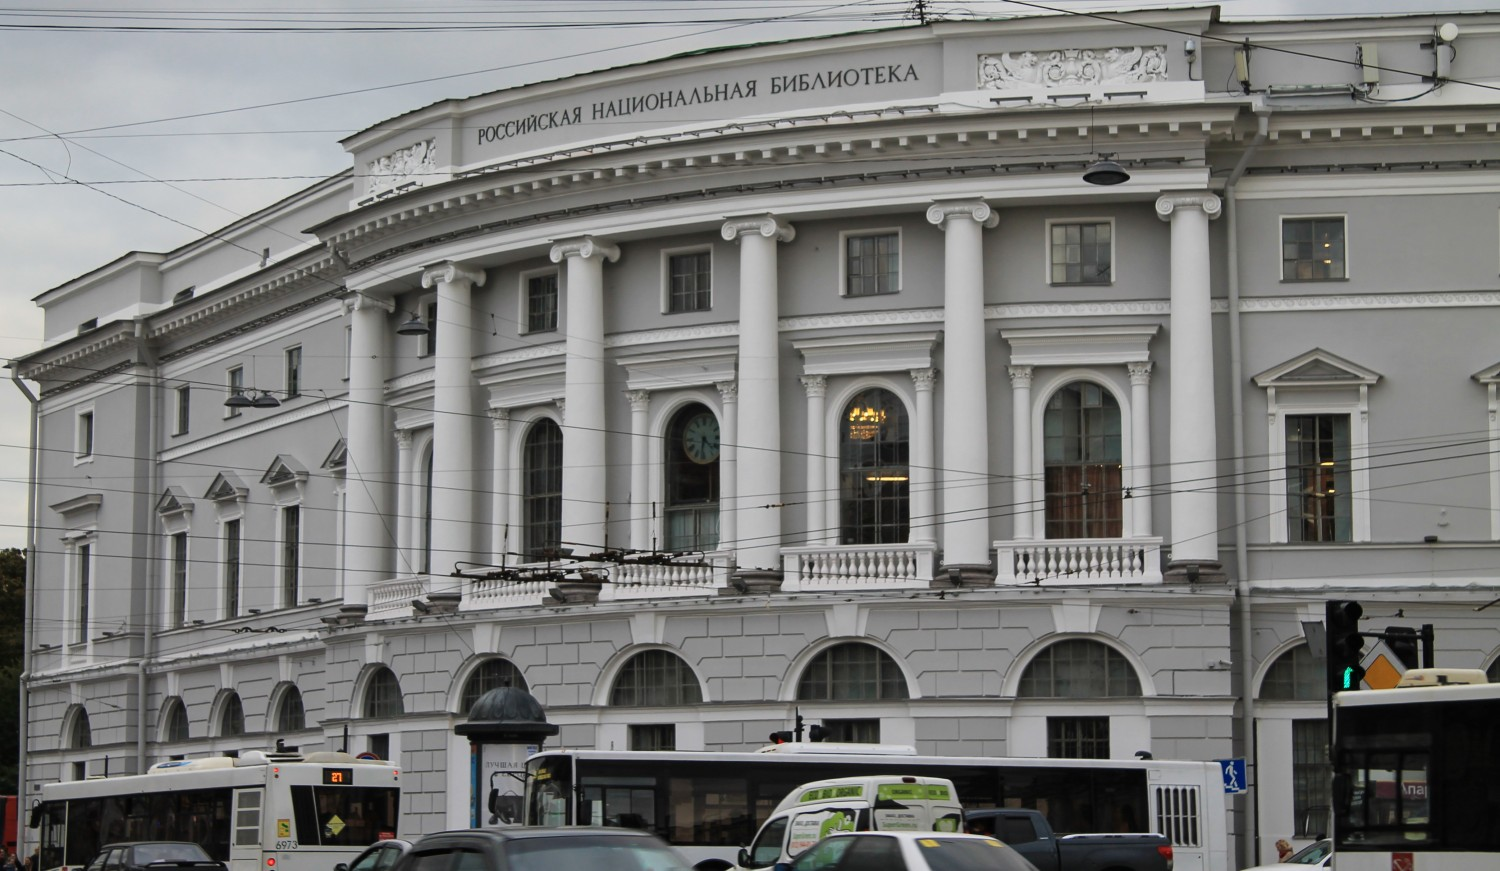 Russian National Library St. Petersburg, National Library of Russia in St. Petersburg |